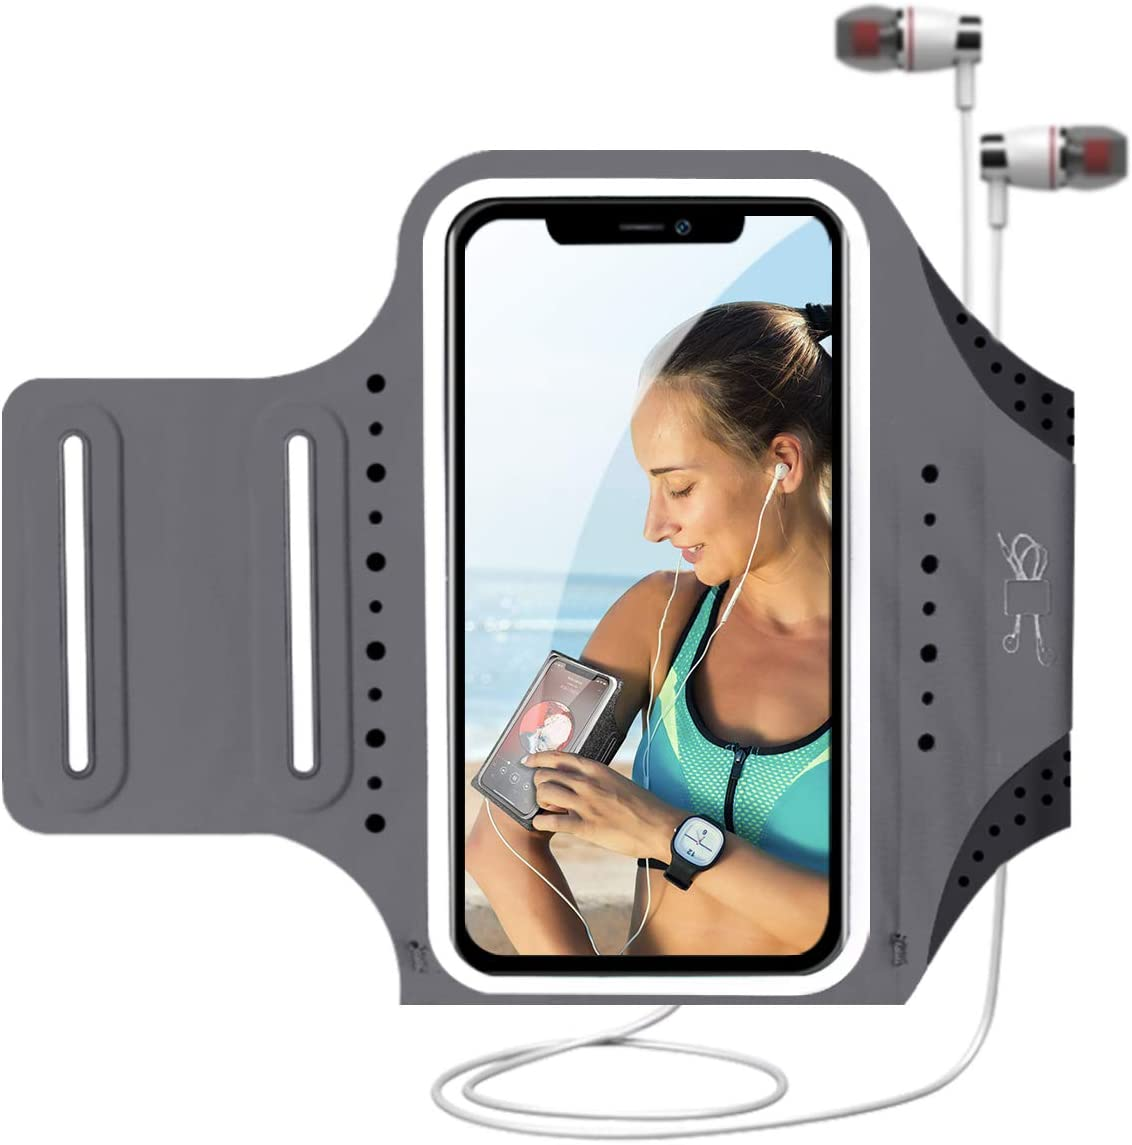 MILPROX Cell Phone Armband, Universal Waterproof Phone Arm Holder with Adjustable Elastic Band & Card Holder Fits for All Phones up to 6.5 Inches (iPhone, Samsung, LG, Pixel) for Gym, Hiking - Gray